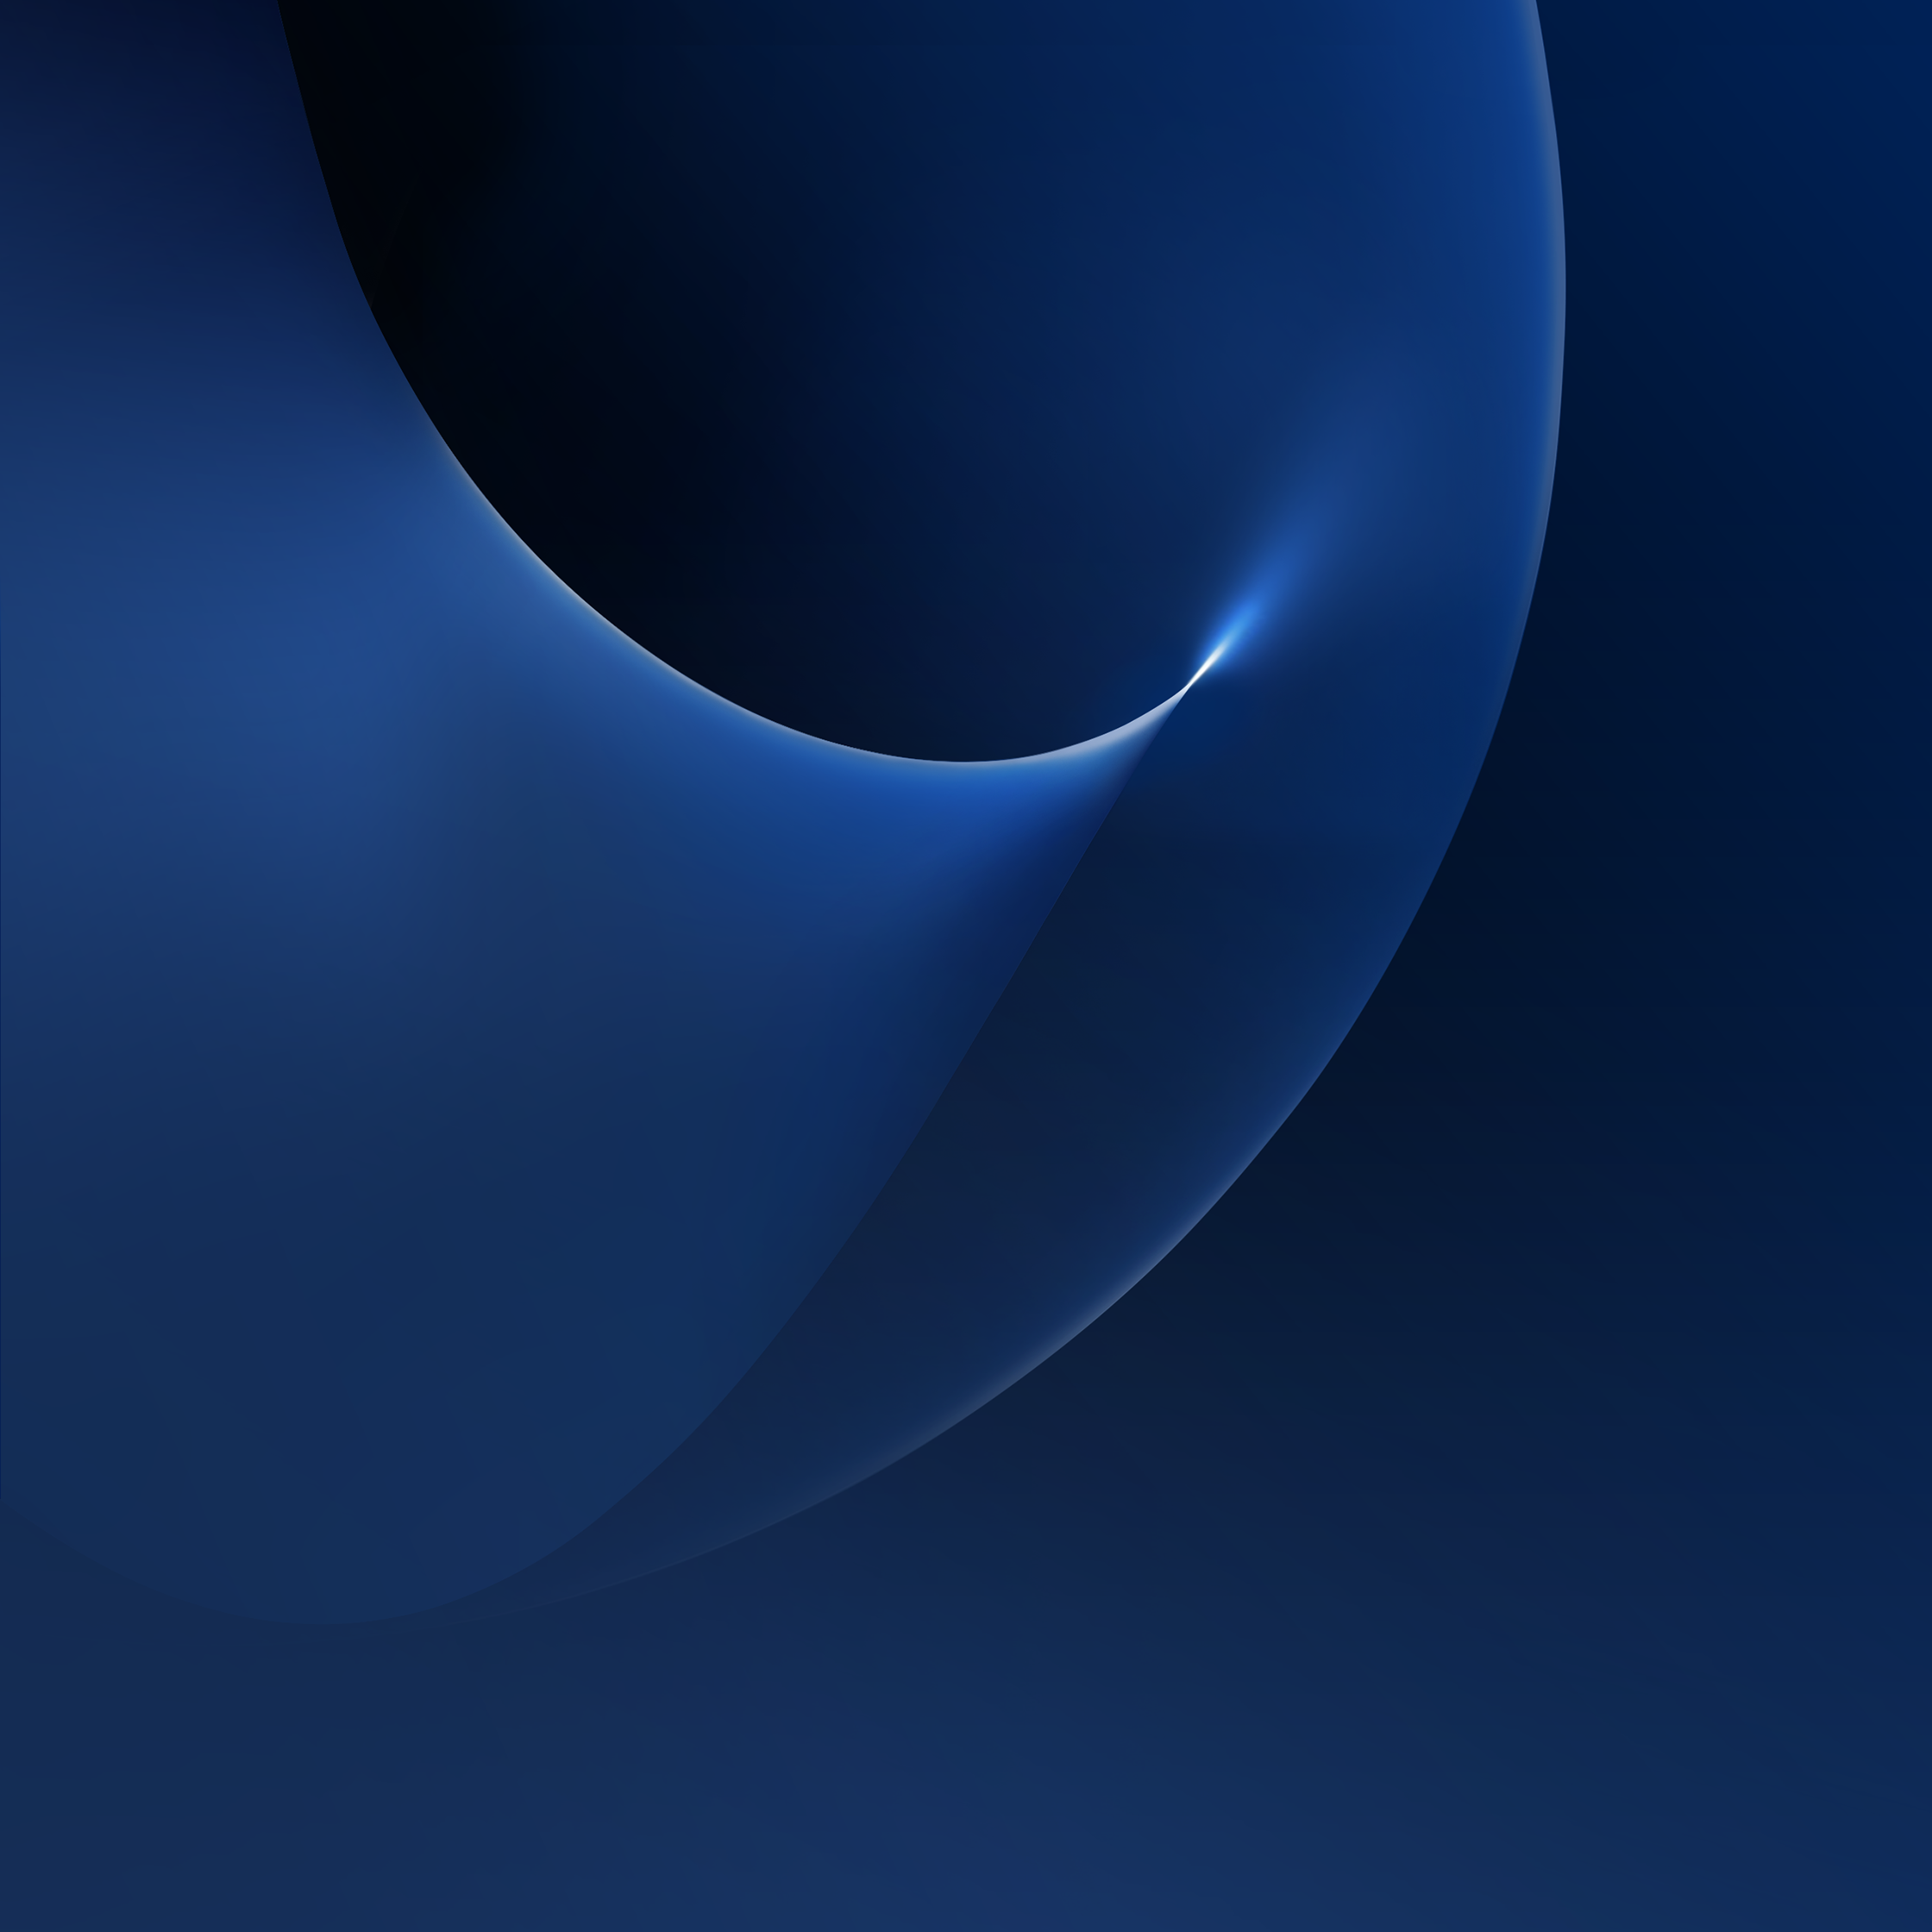 DOWNLOAD: Samsung Galaxy S7 wallpapers leaked